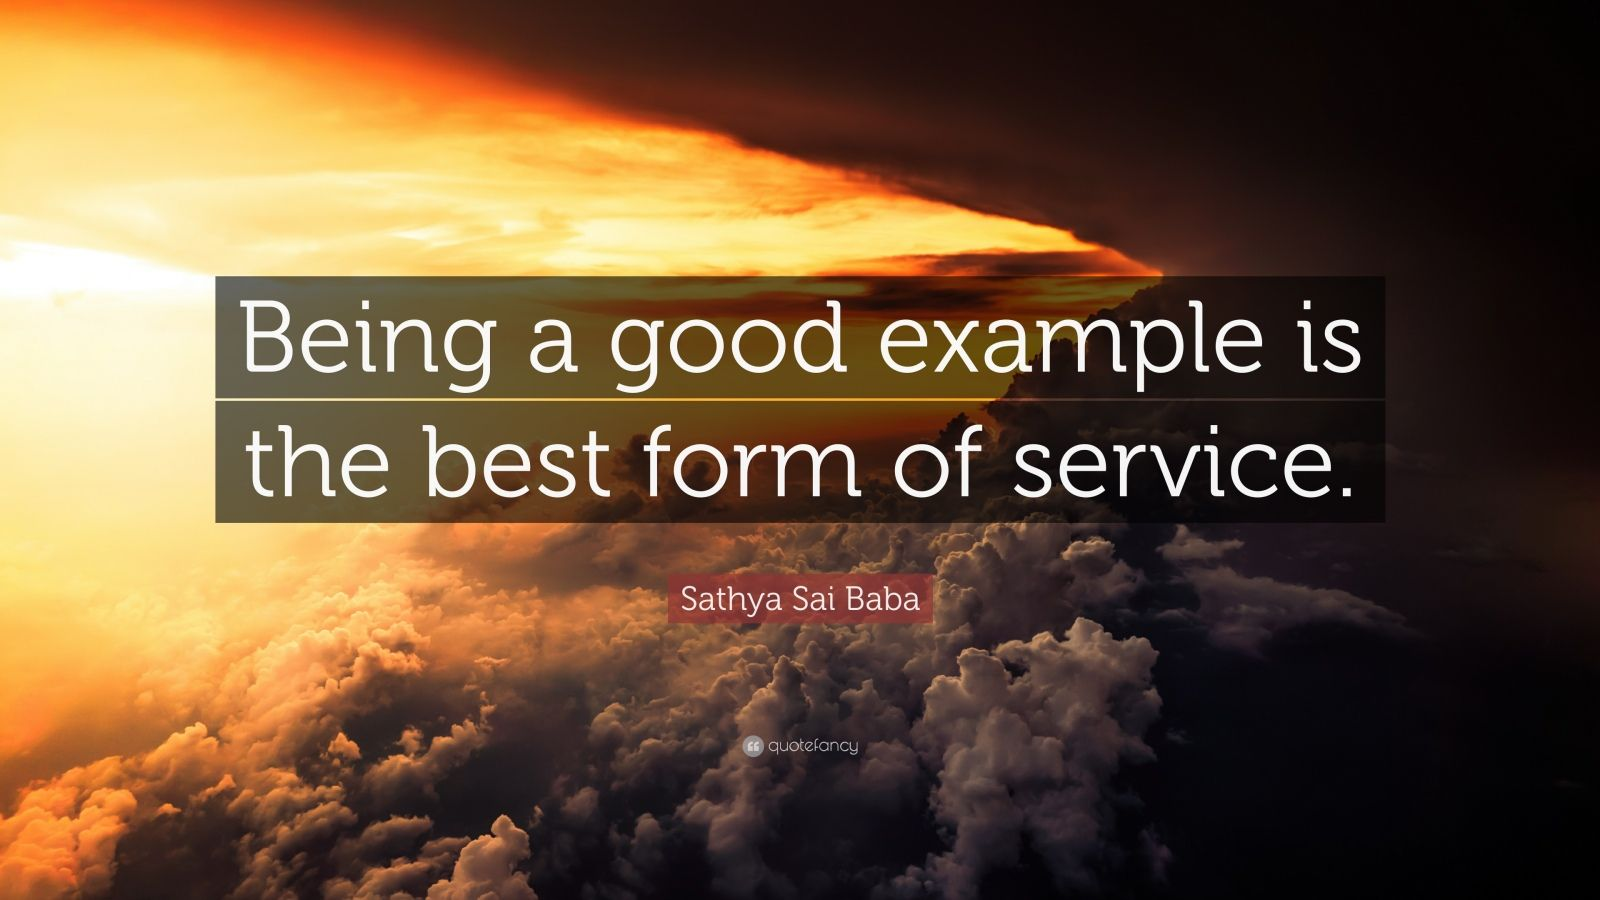 Sathya Sai Baba Quote Being A Good Example Is The Best